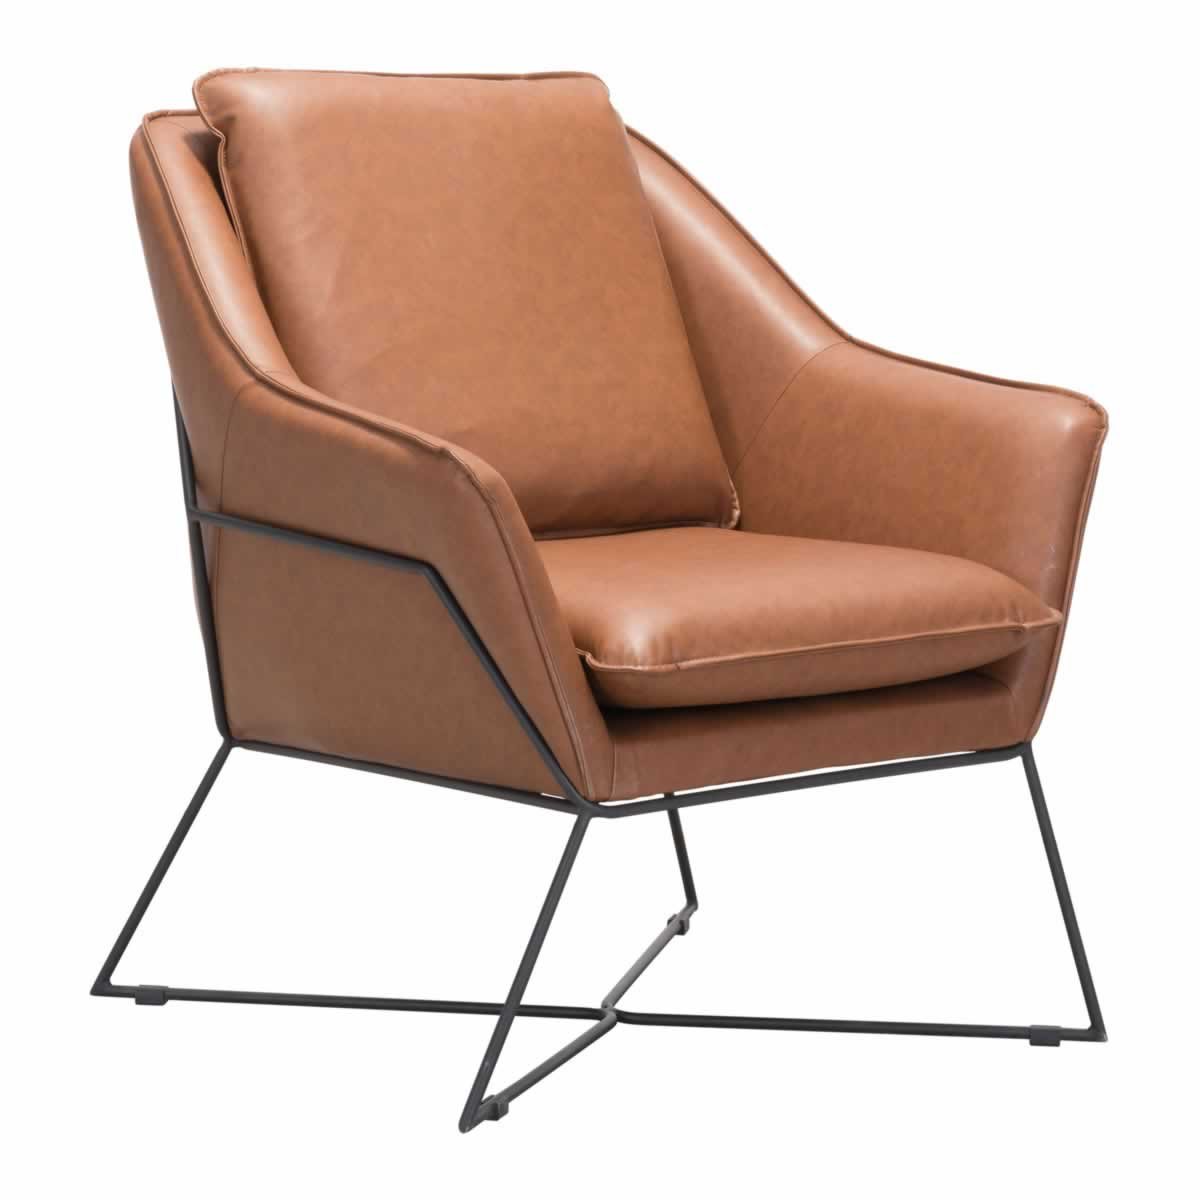 Zuo Lincoln Lounge Chair Saddle